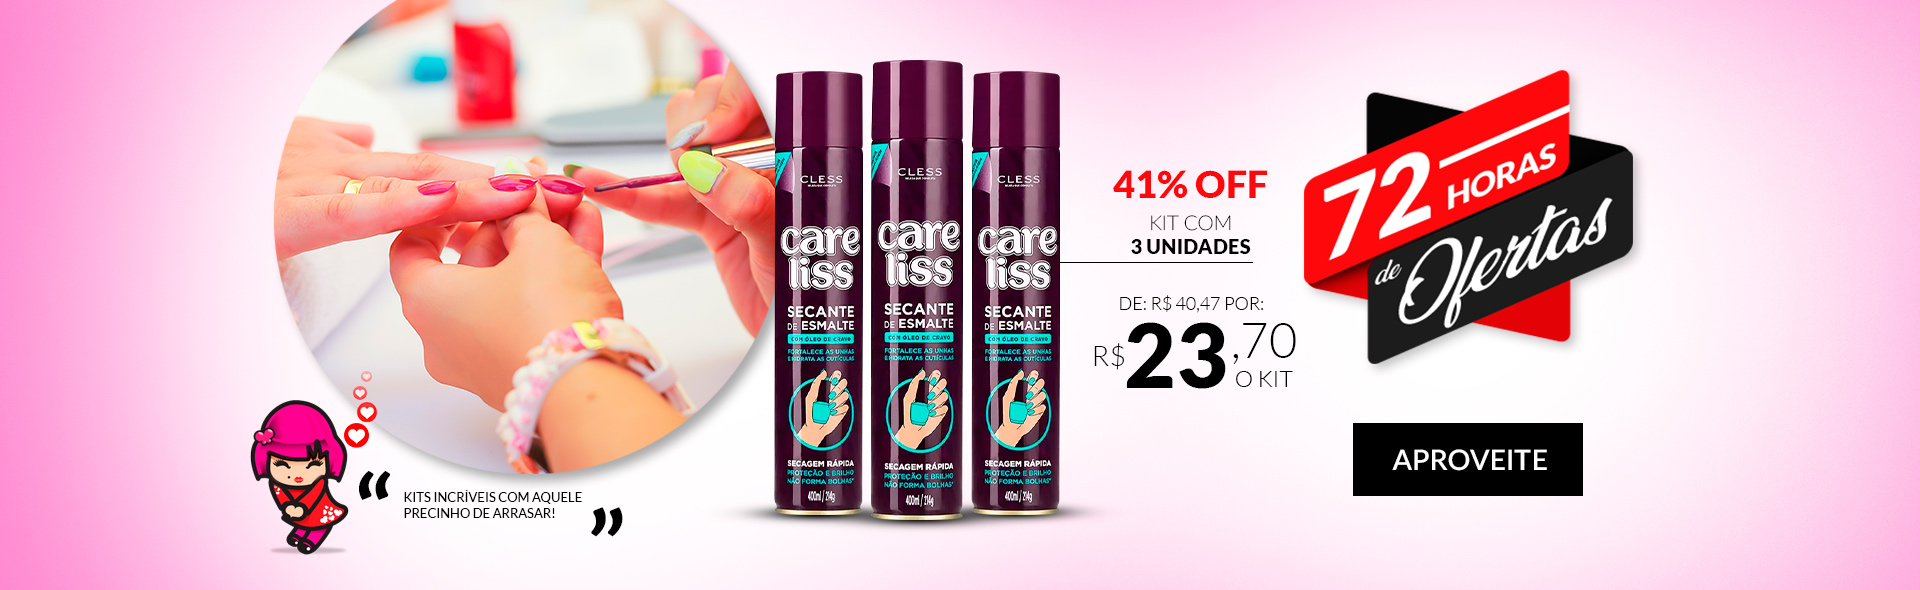 Care Liss